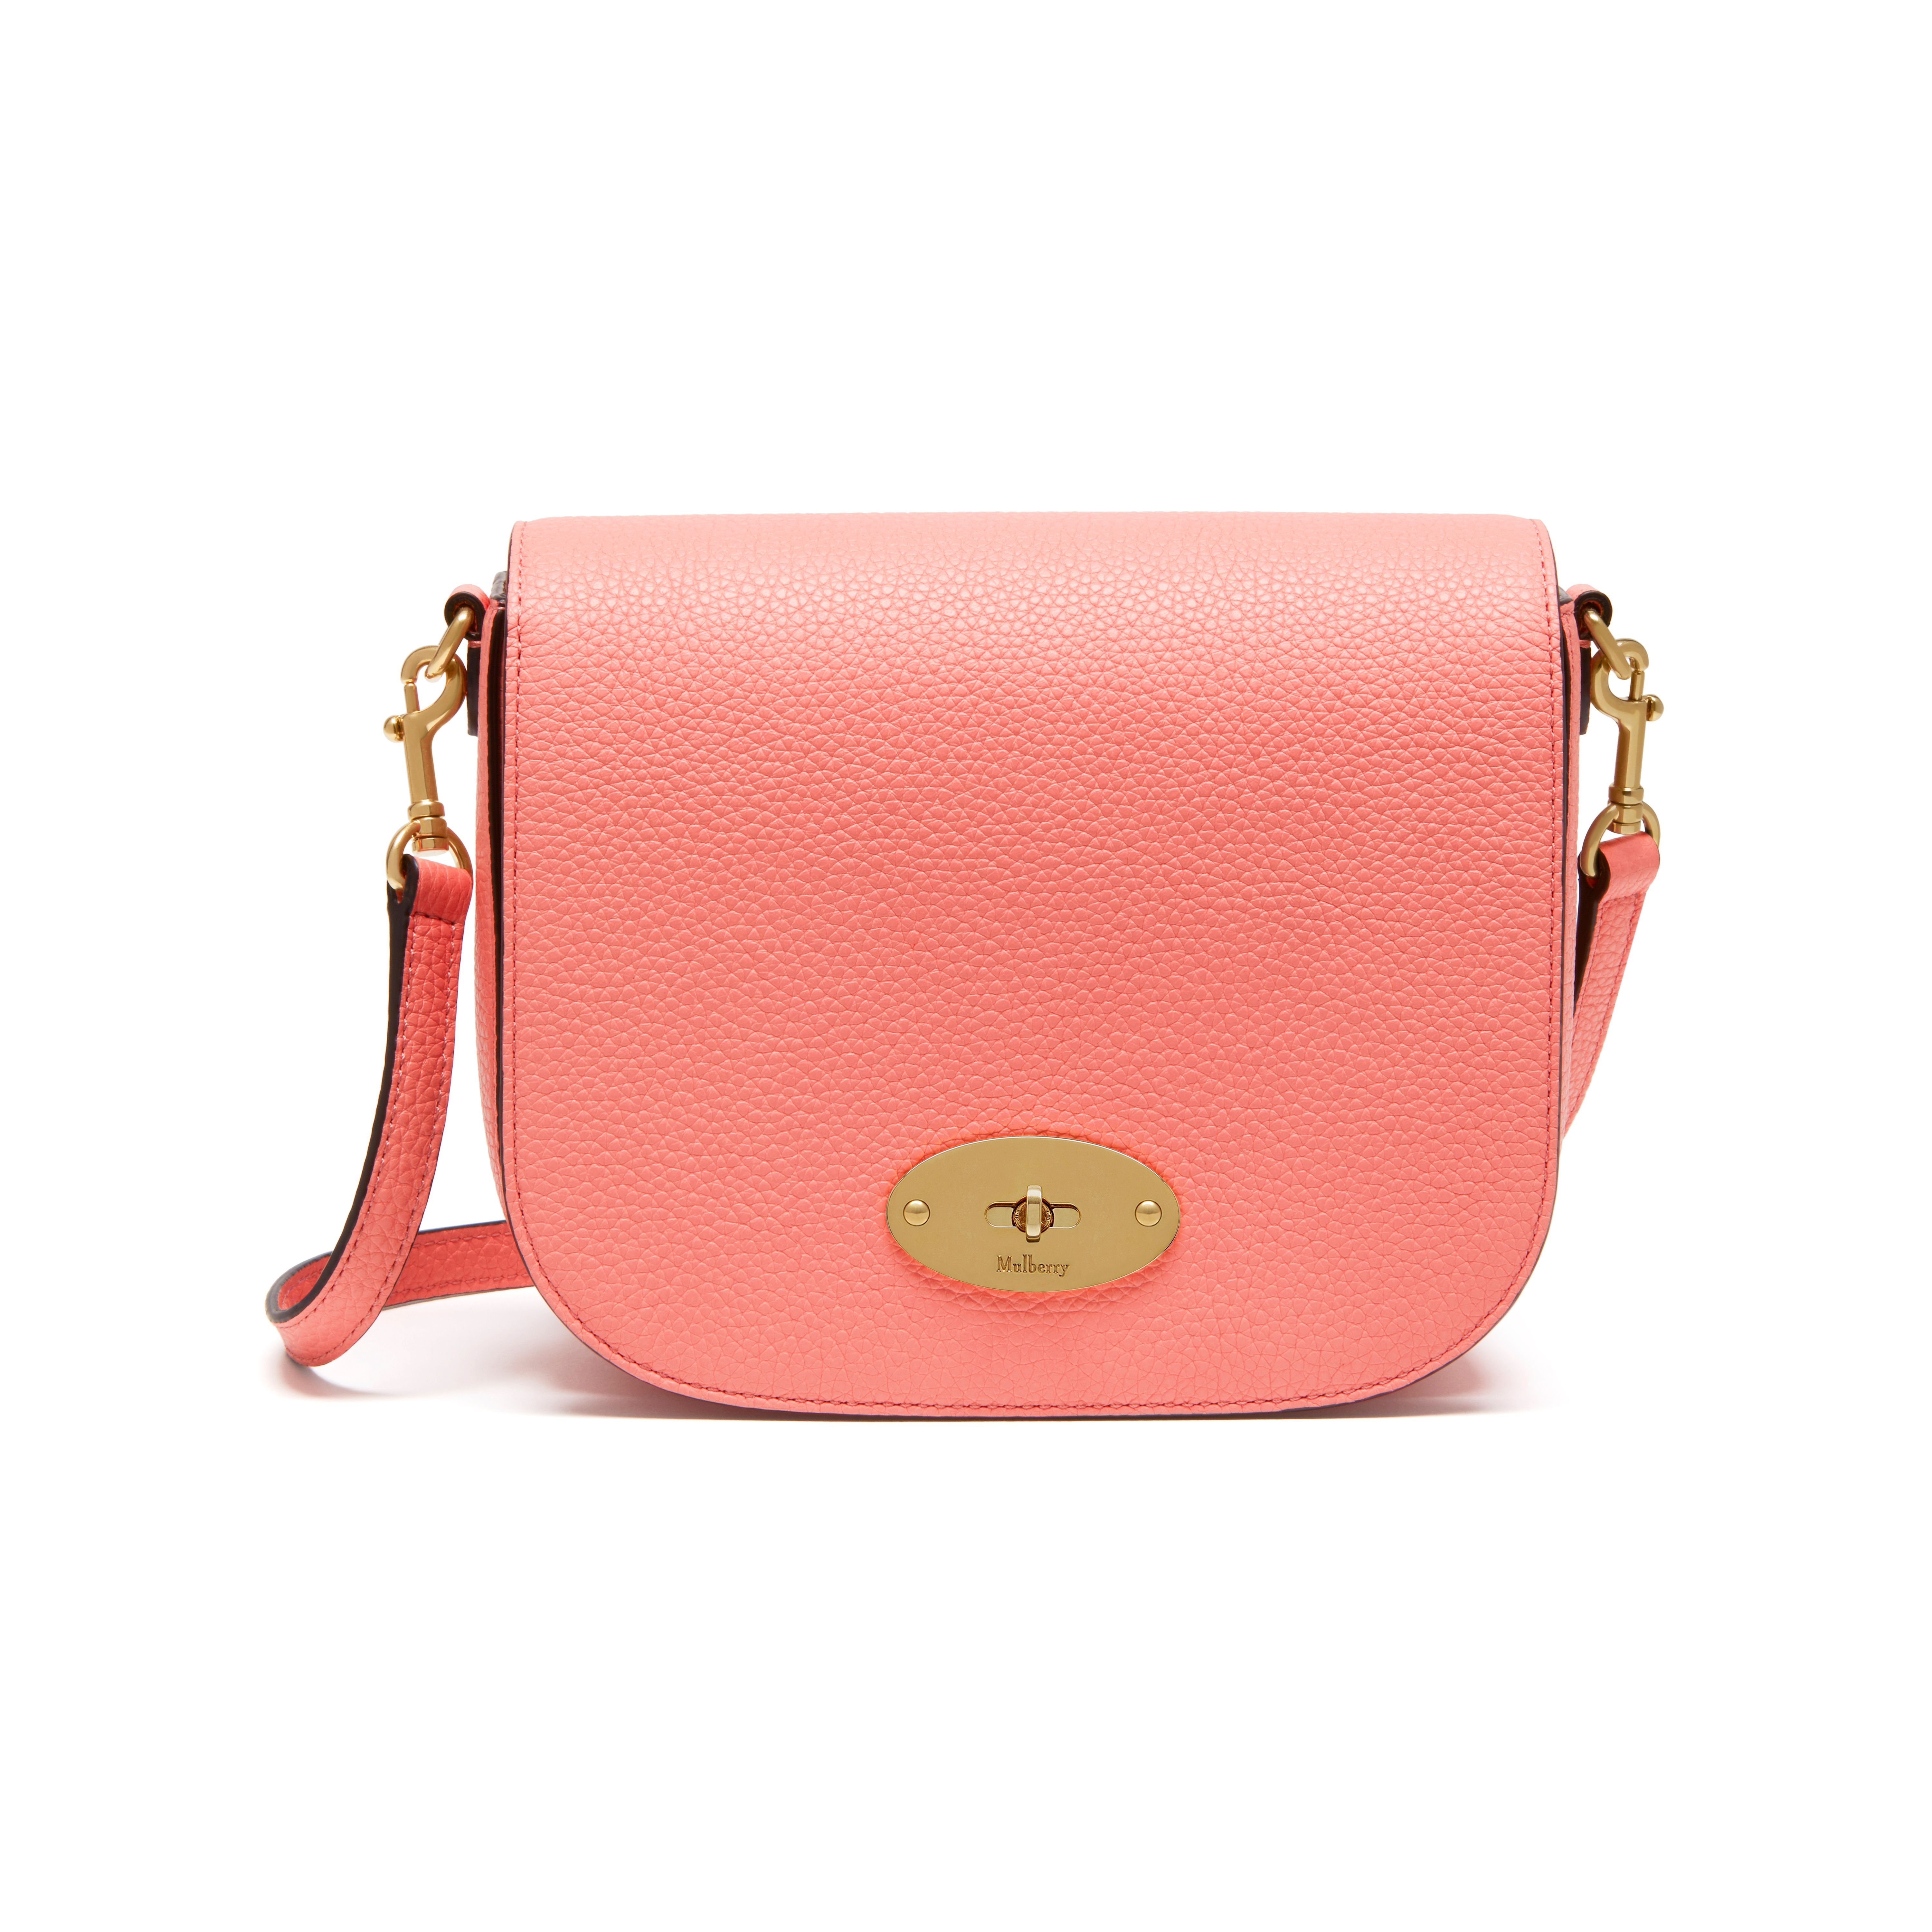 Shop the Darley in Small Classic Grain Leather in Macaroon Pink at Mulberry.com.  A classic clutch 74504ec021a6d